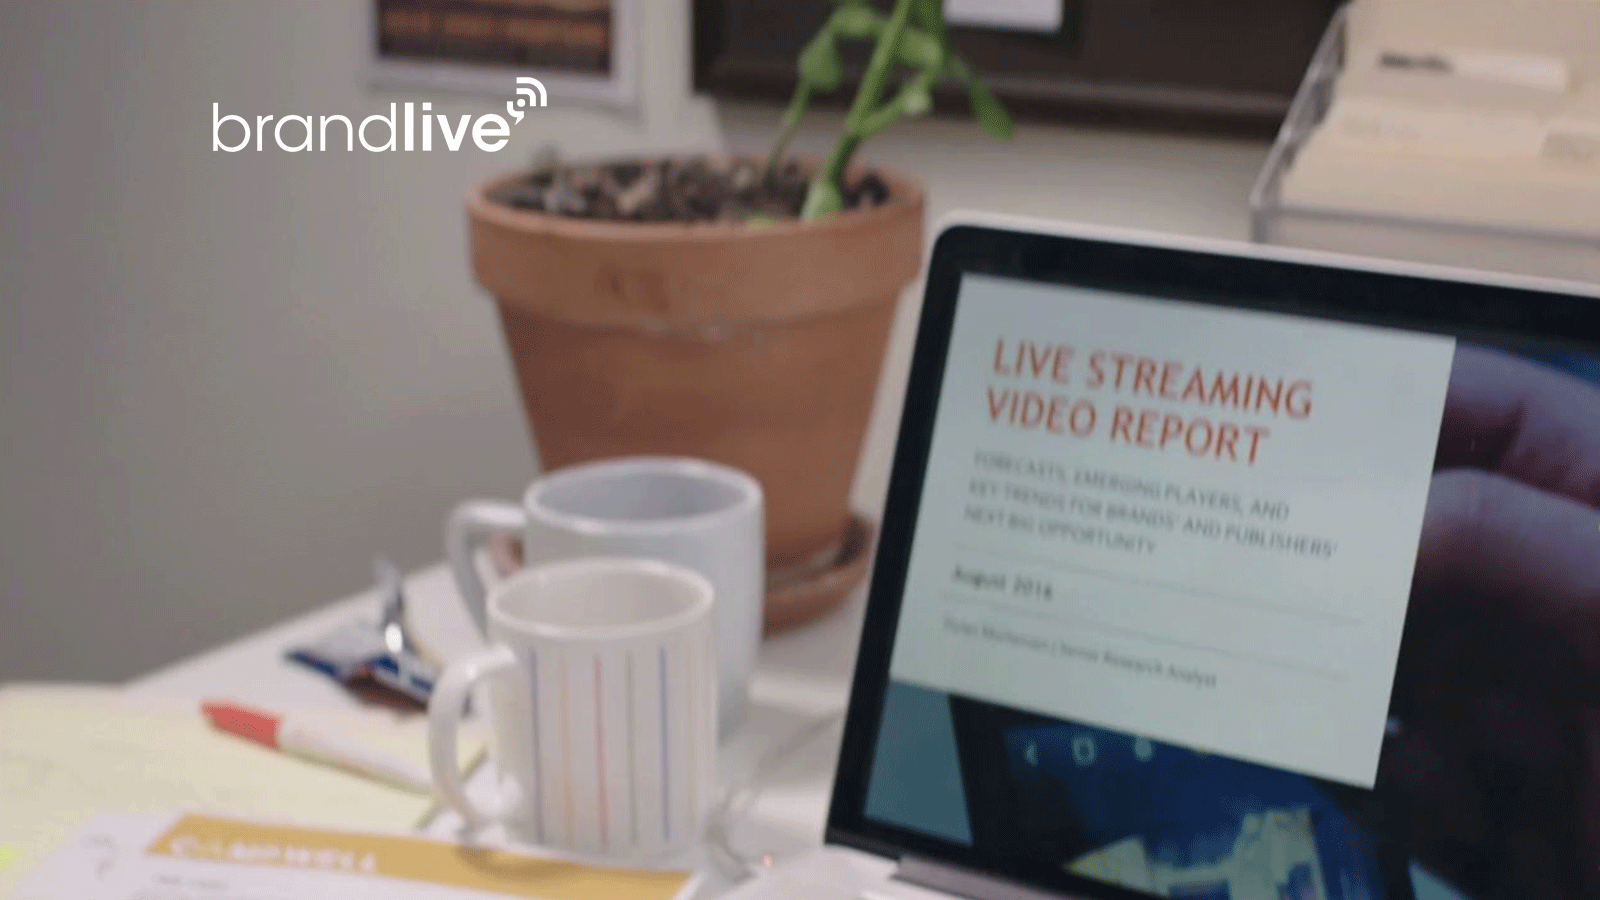 Brandlive Unveils New Version of Omni-channel Live Video Platform for Brands and Retailers